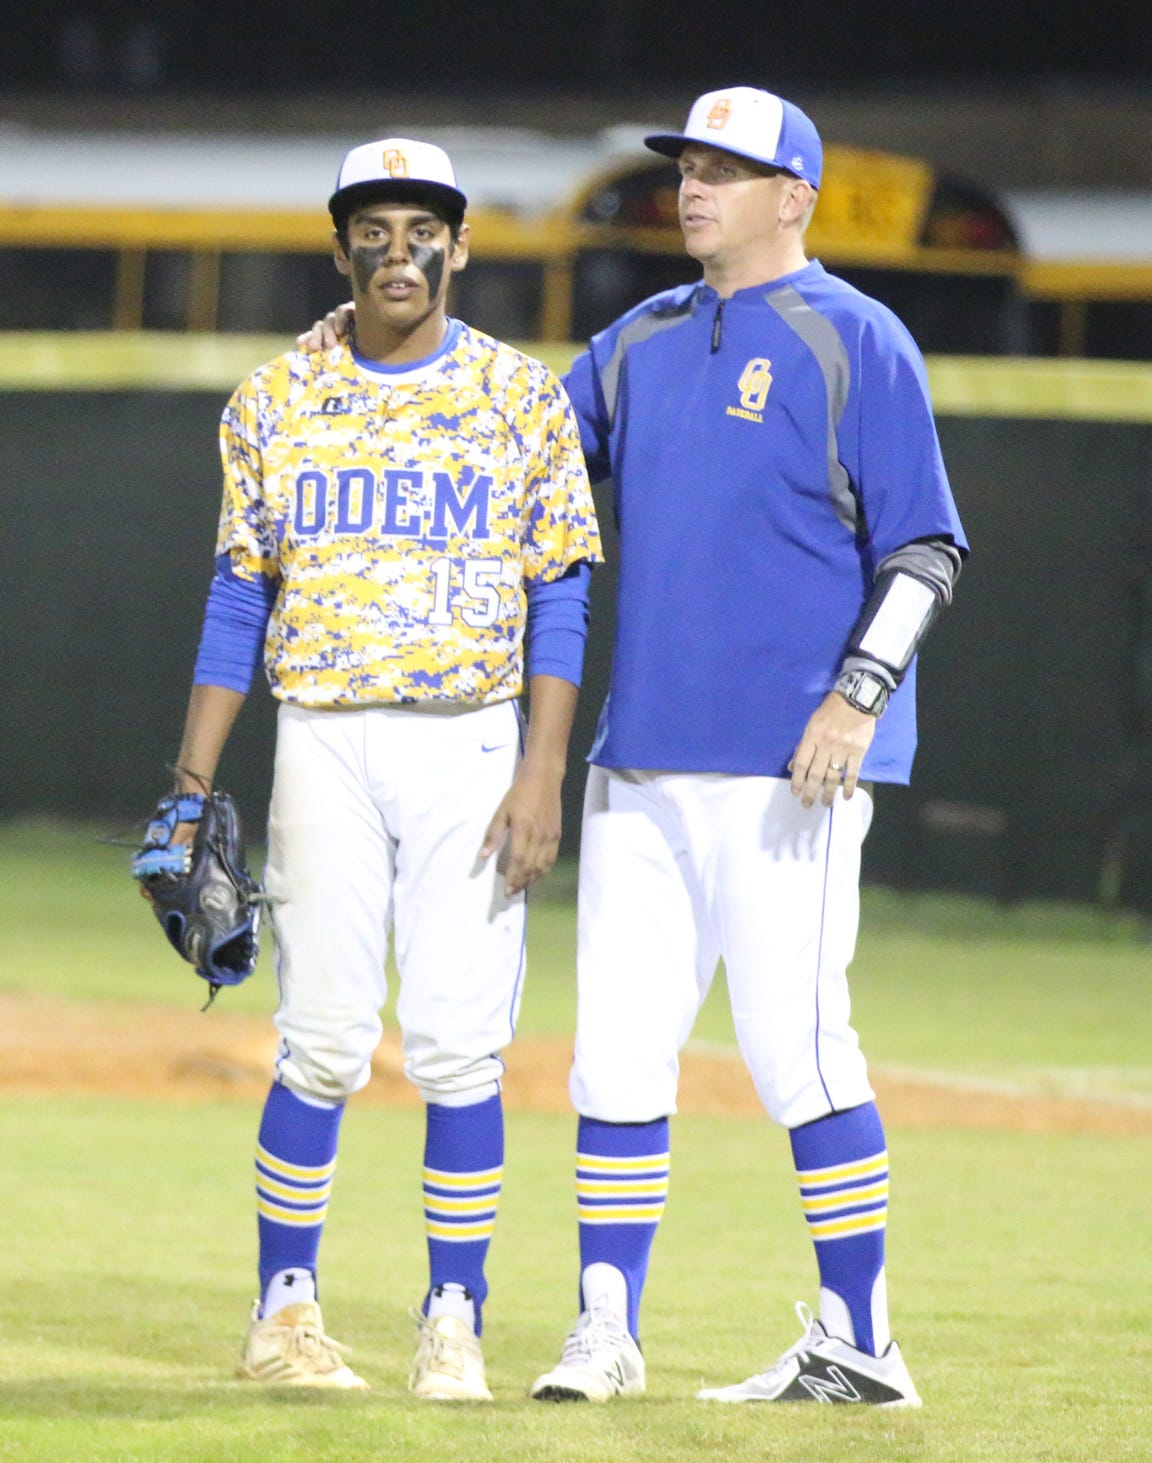 Odem coach Jason Pfluger has guided the Owls to the area round of the playoffs in Class 3A in 2019.